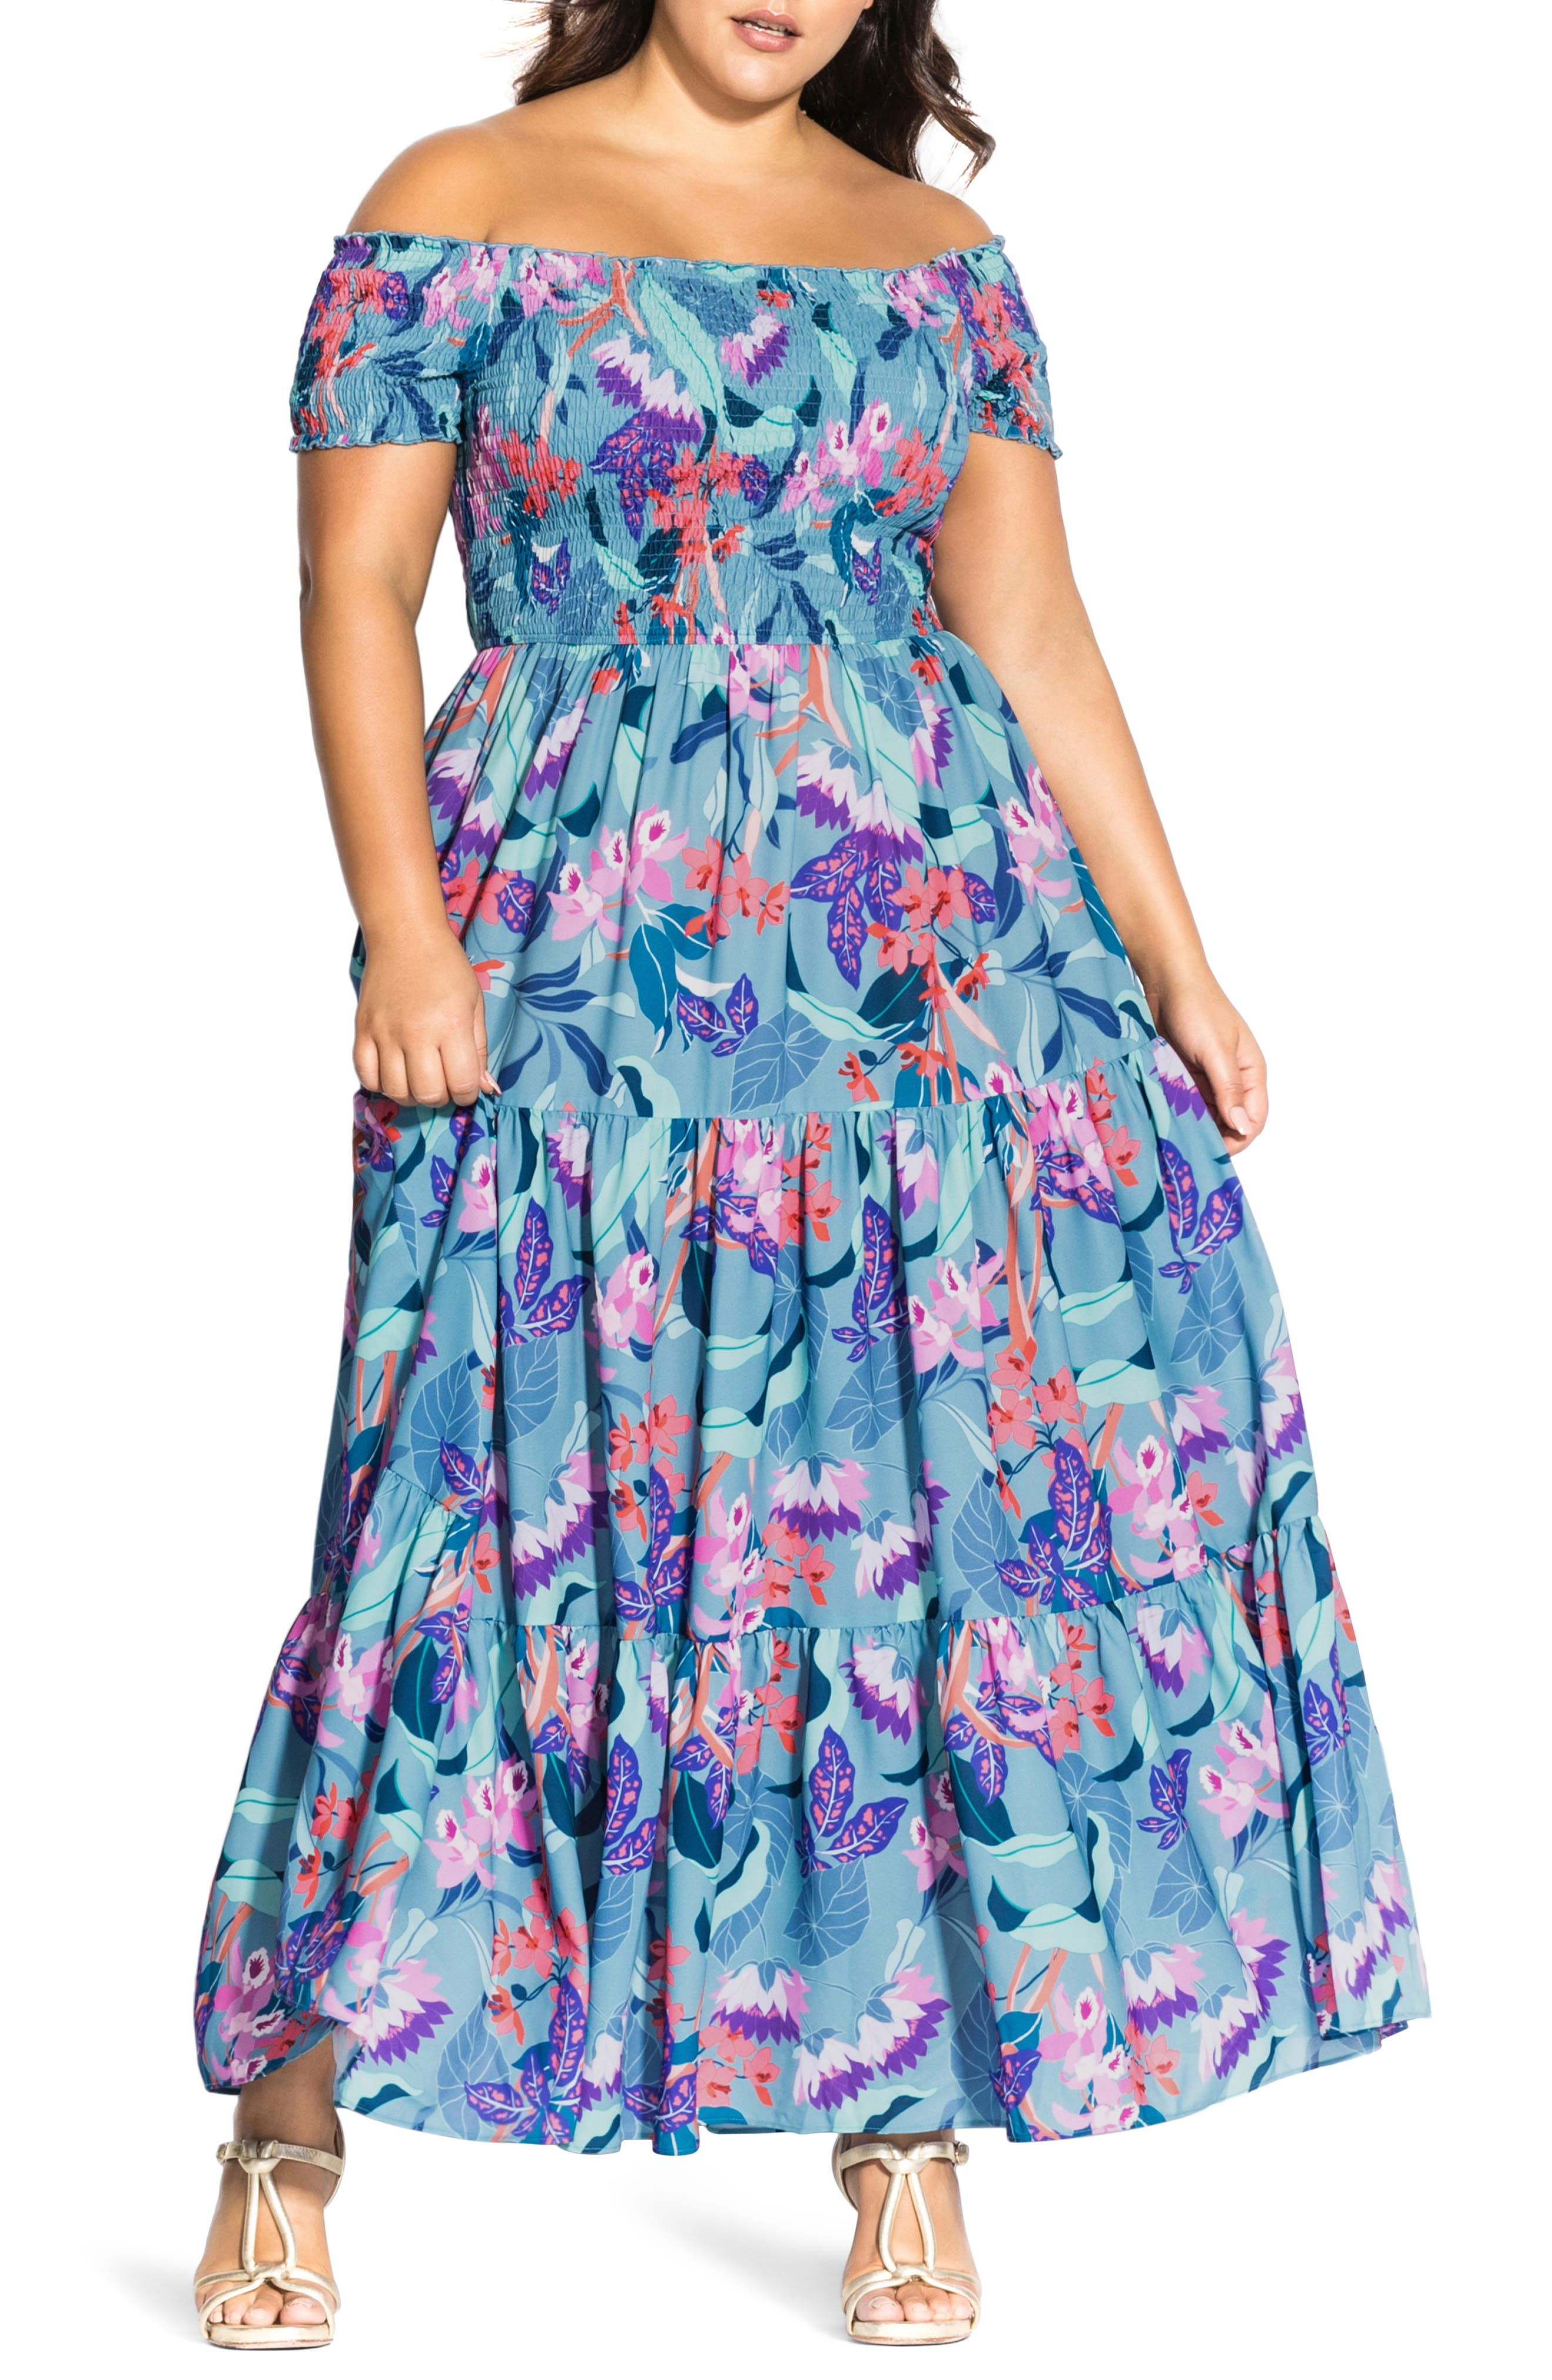 94fa28ef5f542 Plus Size Chic City Mystery Floral Off-The Shoulder Maxi Dress, Blue